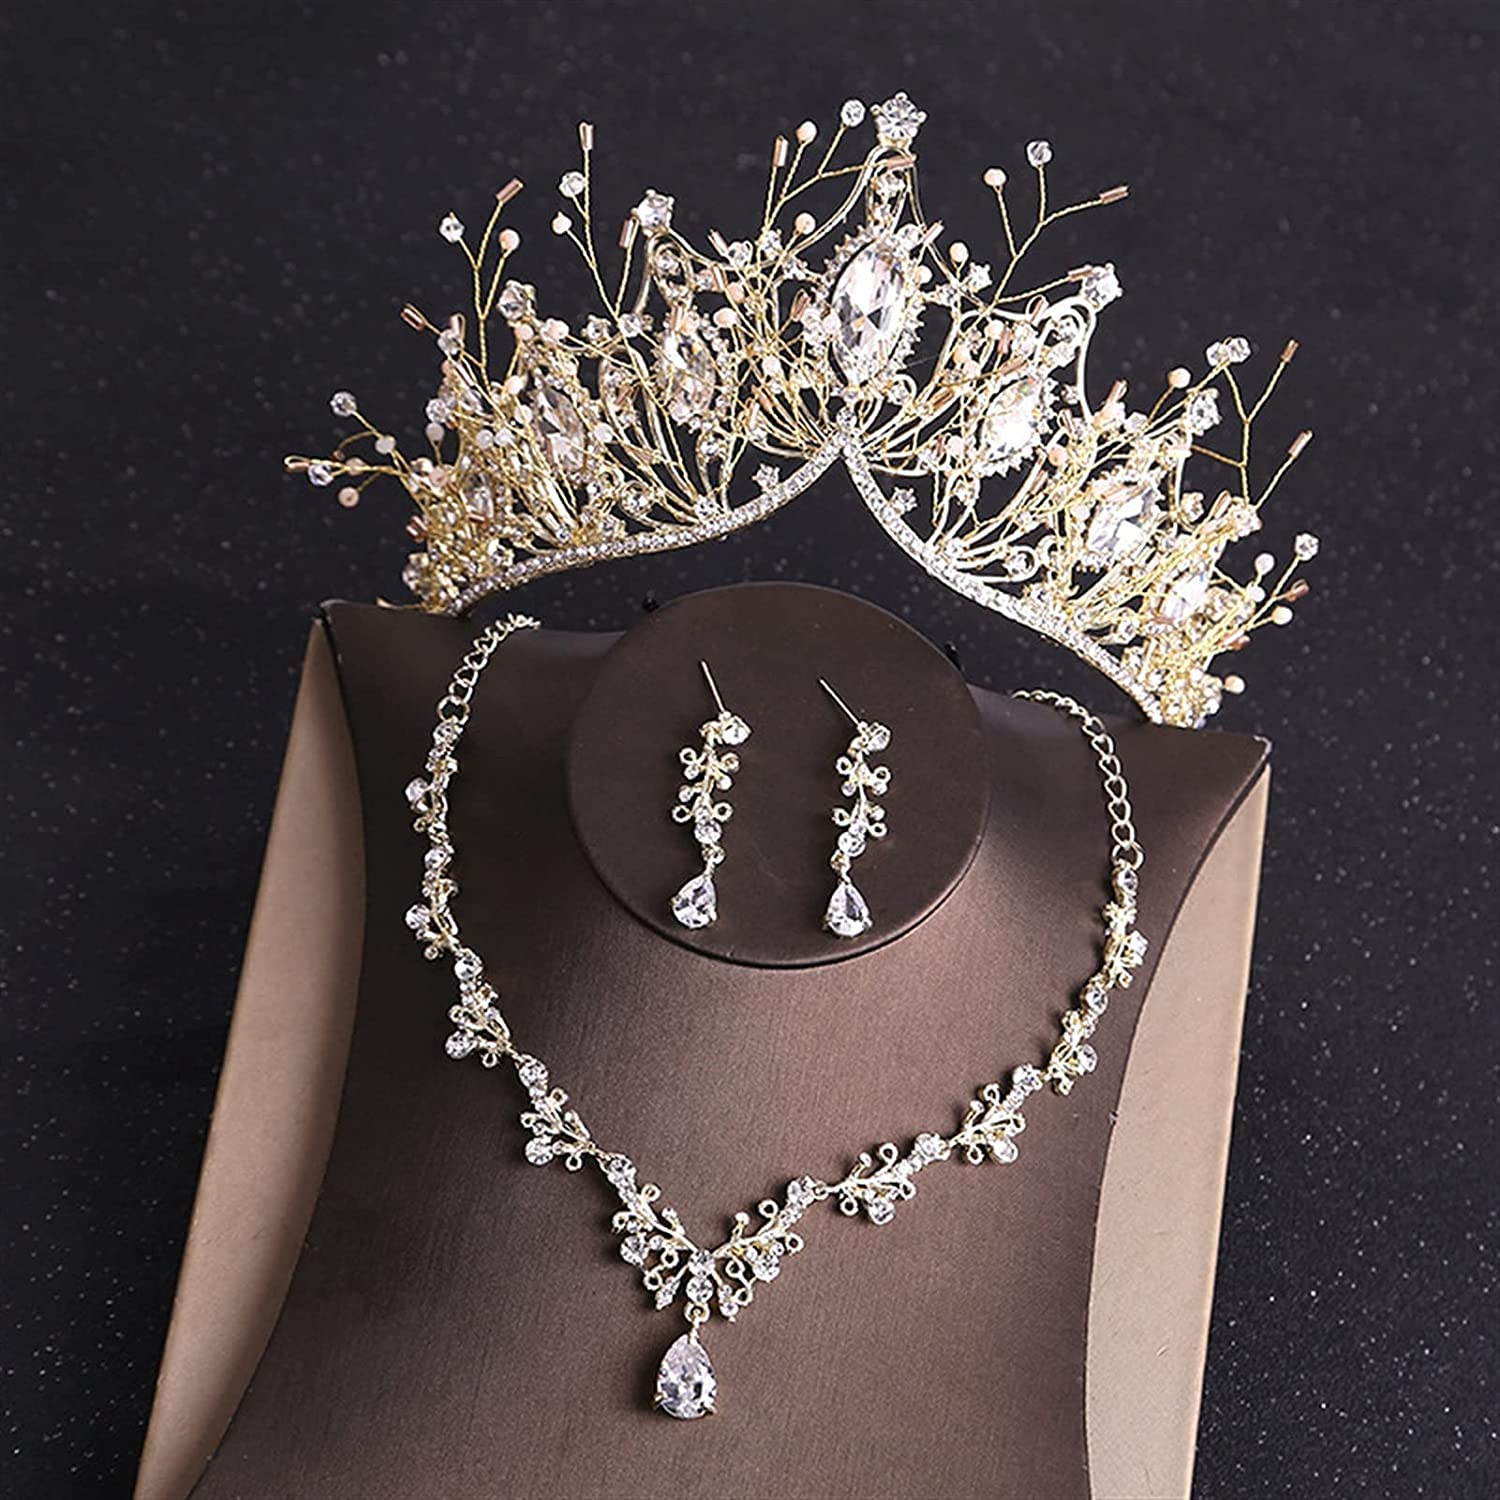 YUANBOO Baroque Retro Costume Bridal Jewelry Sets Rhinestone Crystal Gold Tiara Crown Earrings Necklace Wedding Bride Luxury Jewelry Set (Metal Color : 3Pcs Gold Set)